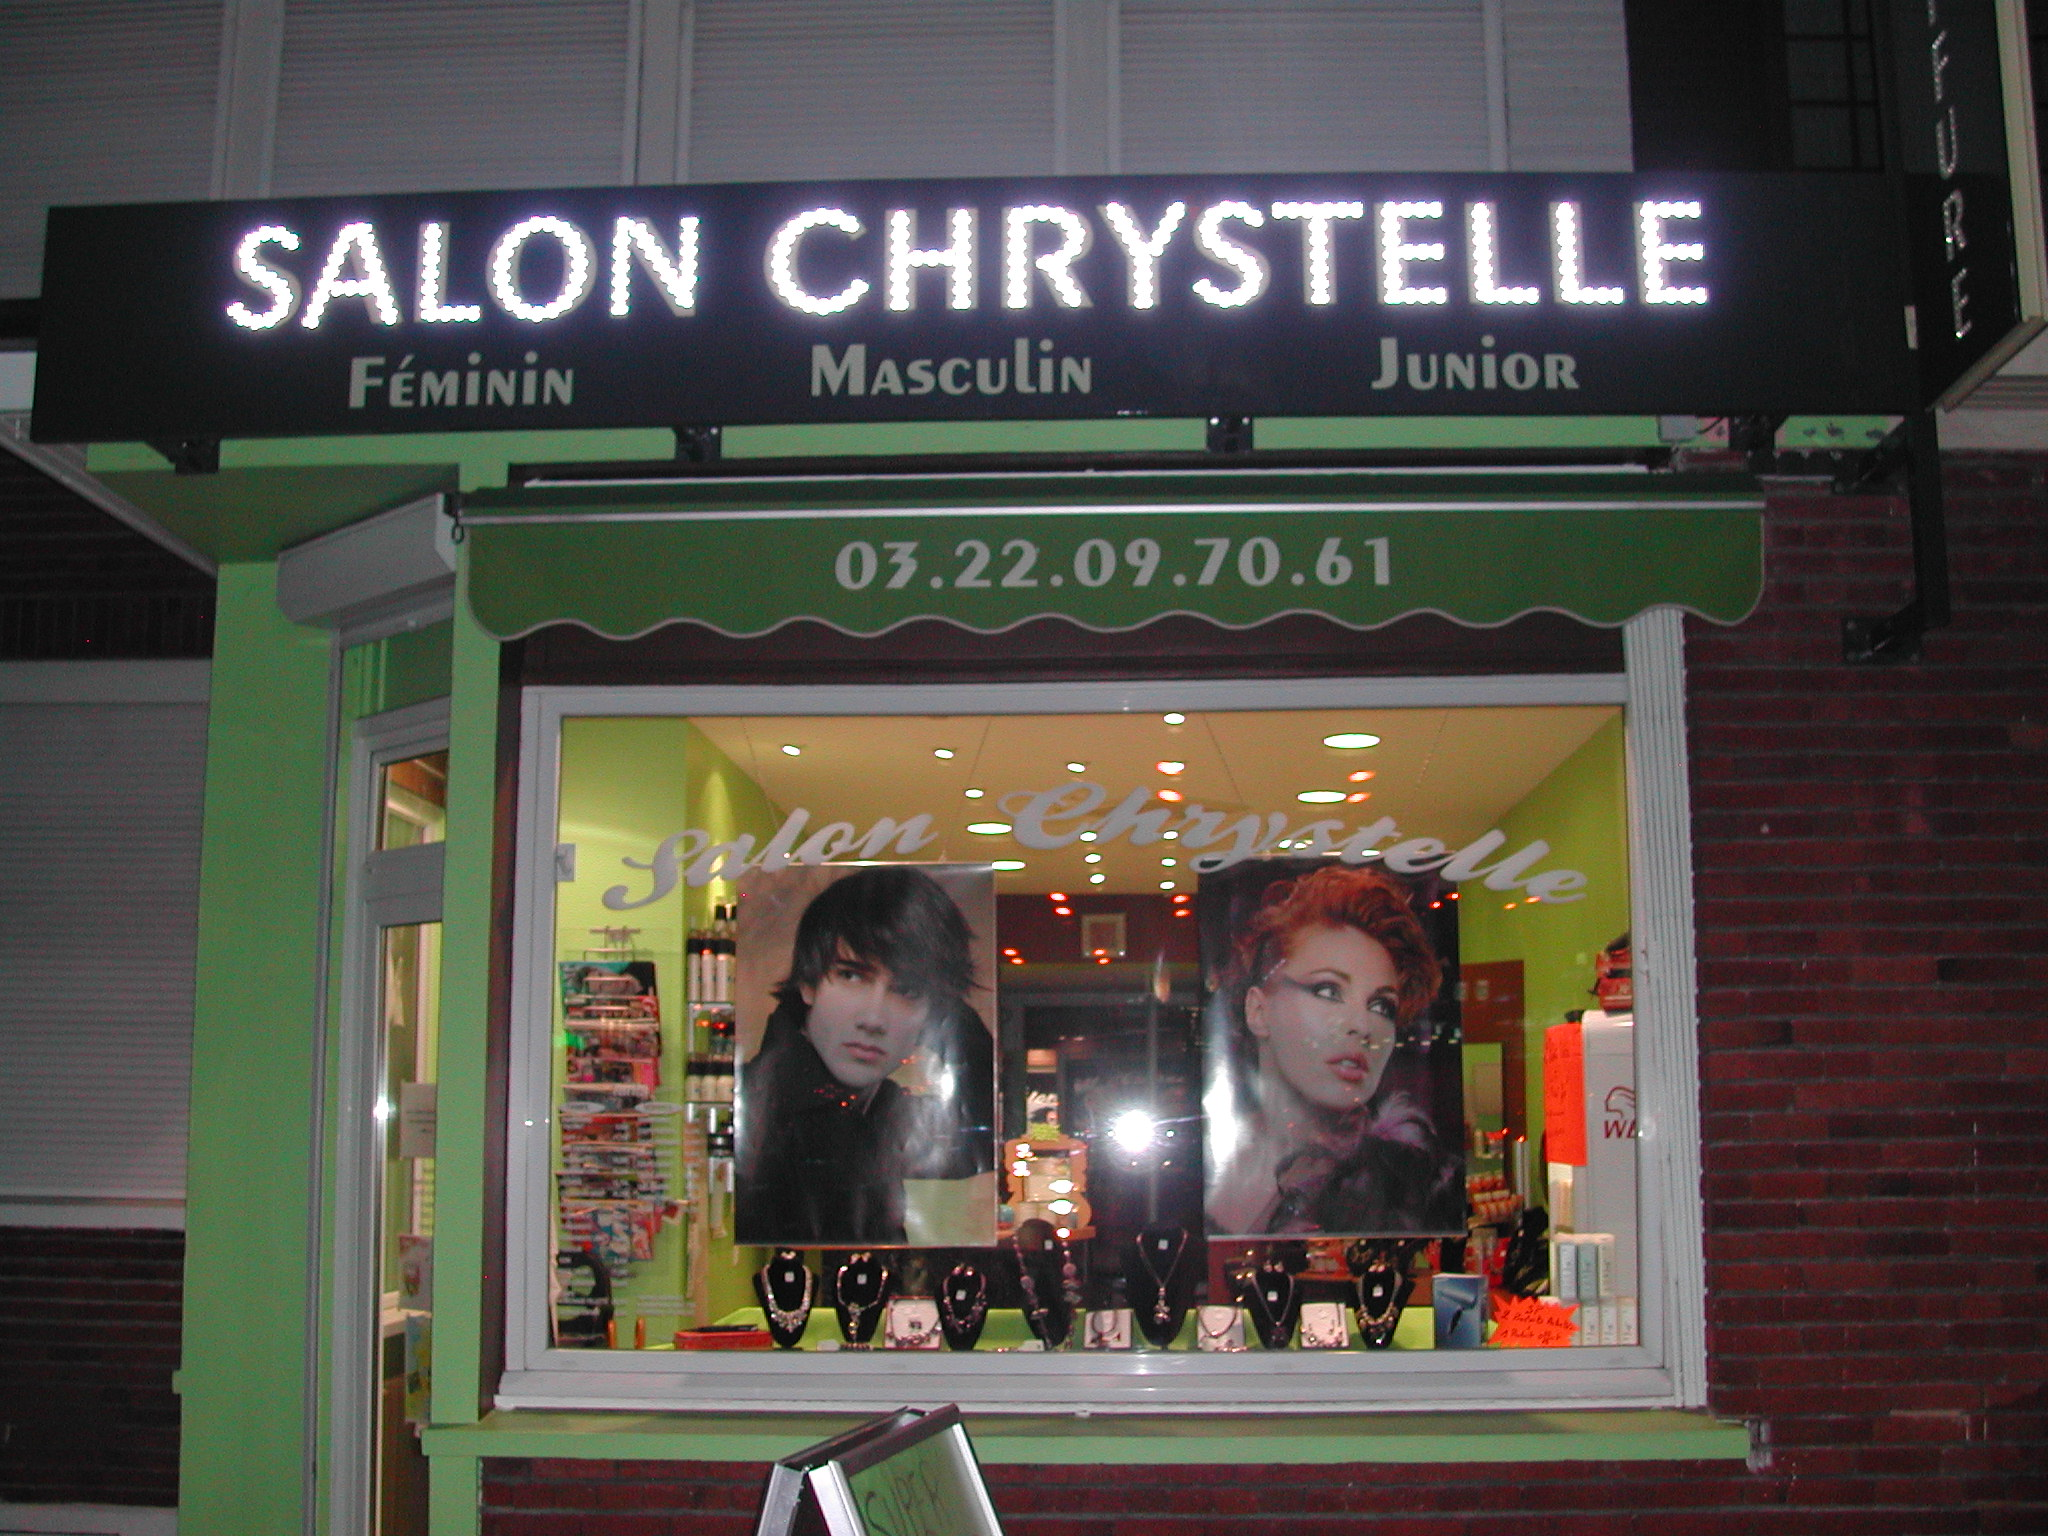 Salon Chrystelle